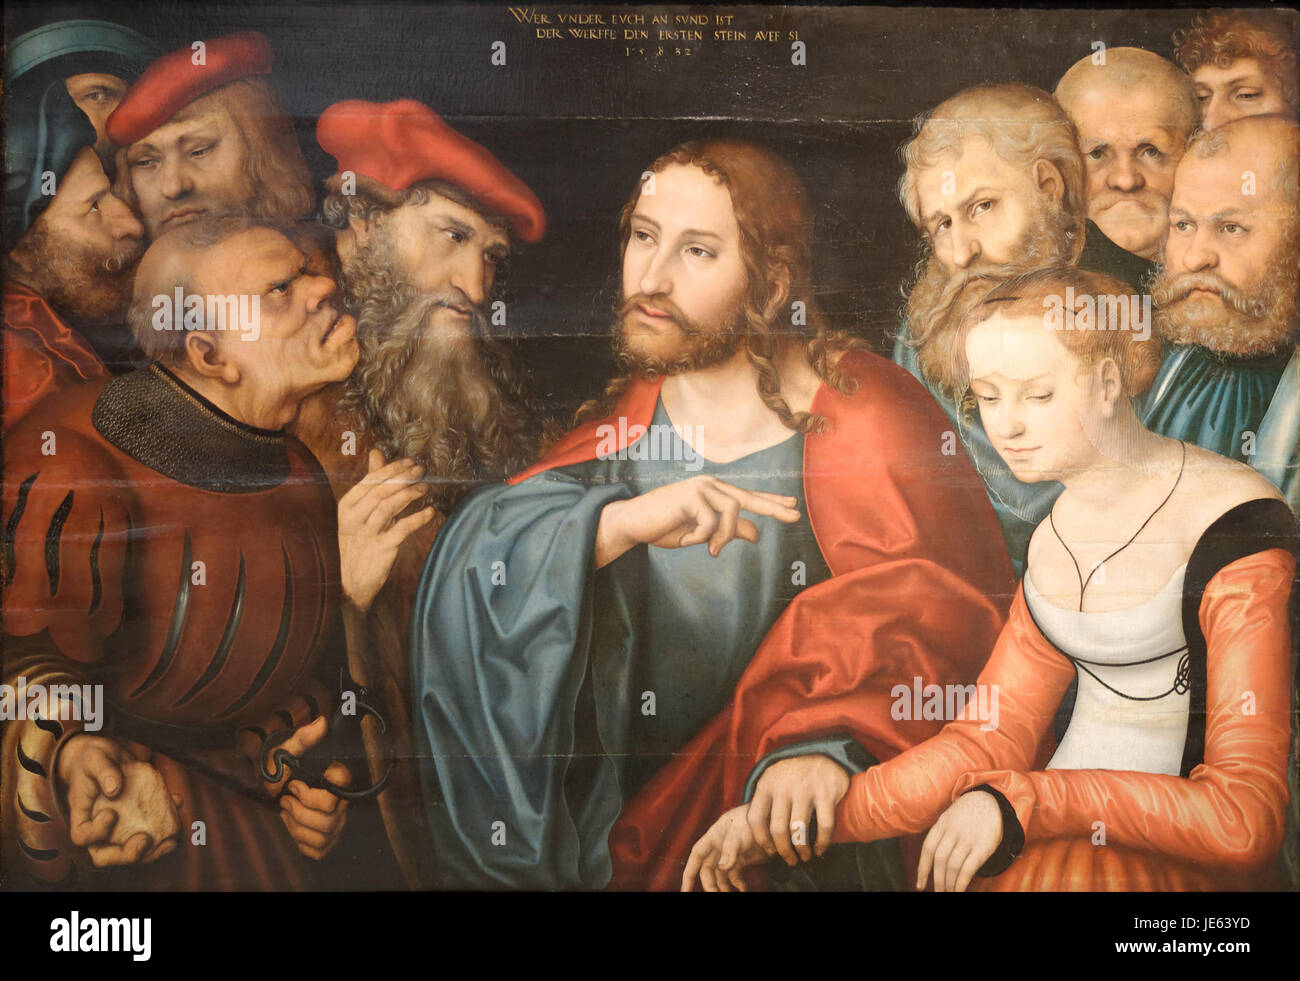 Christ and the adulteress - Lucas Cranach the Elder - Stock Image